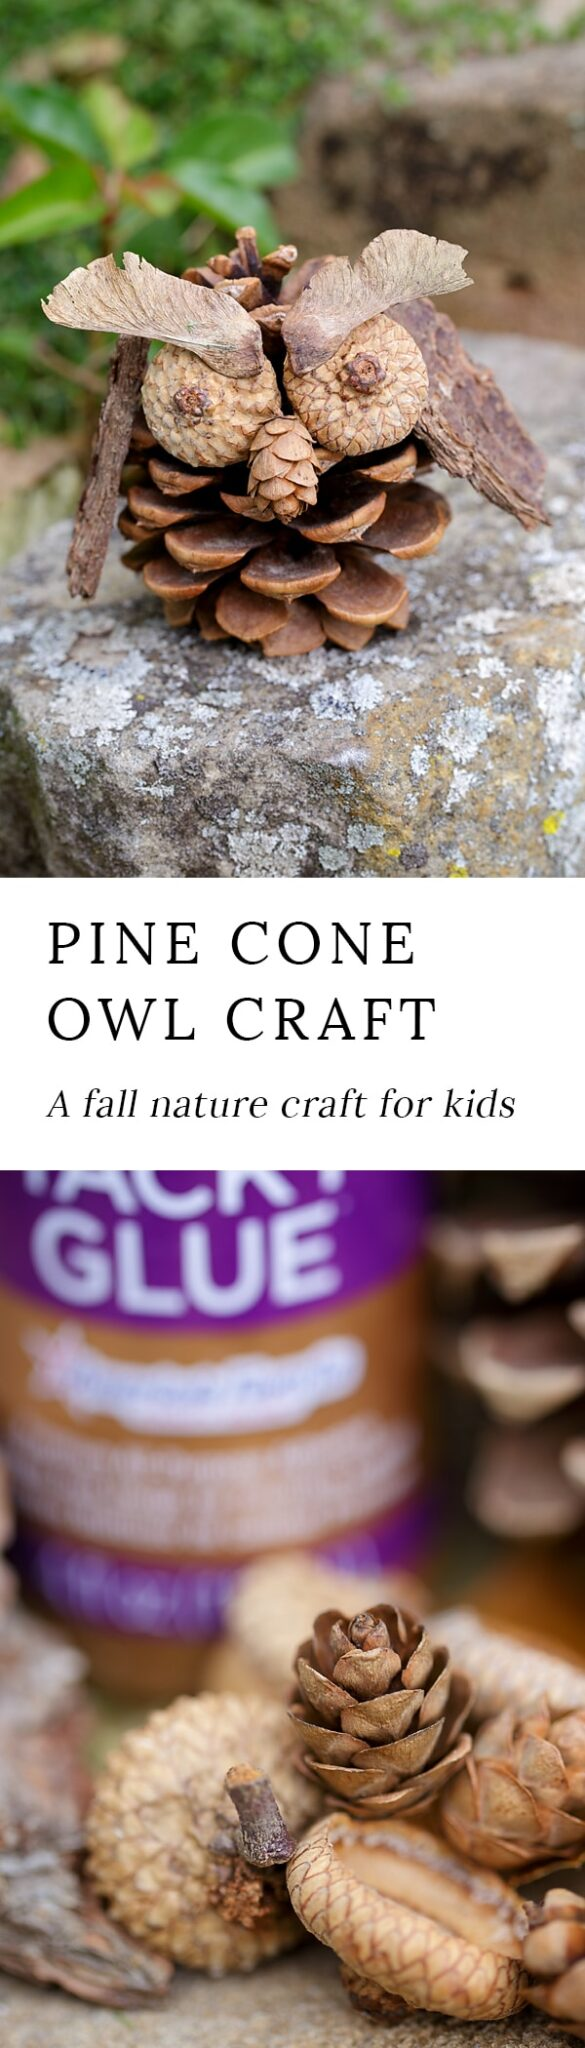 Fall is the perfect season for nature crafting! Kids will love being creative with acorns, pinecones, twigs, bark, and seeds to create one-of-a-kind Pinecone Owls.